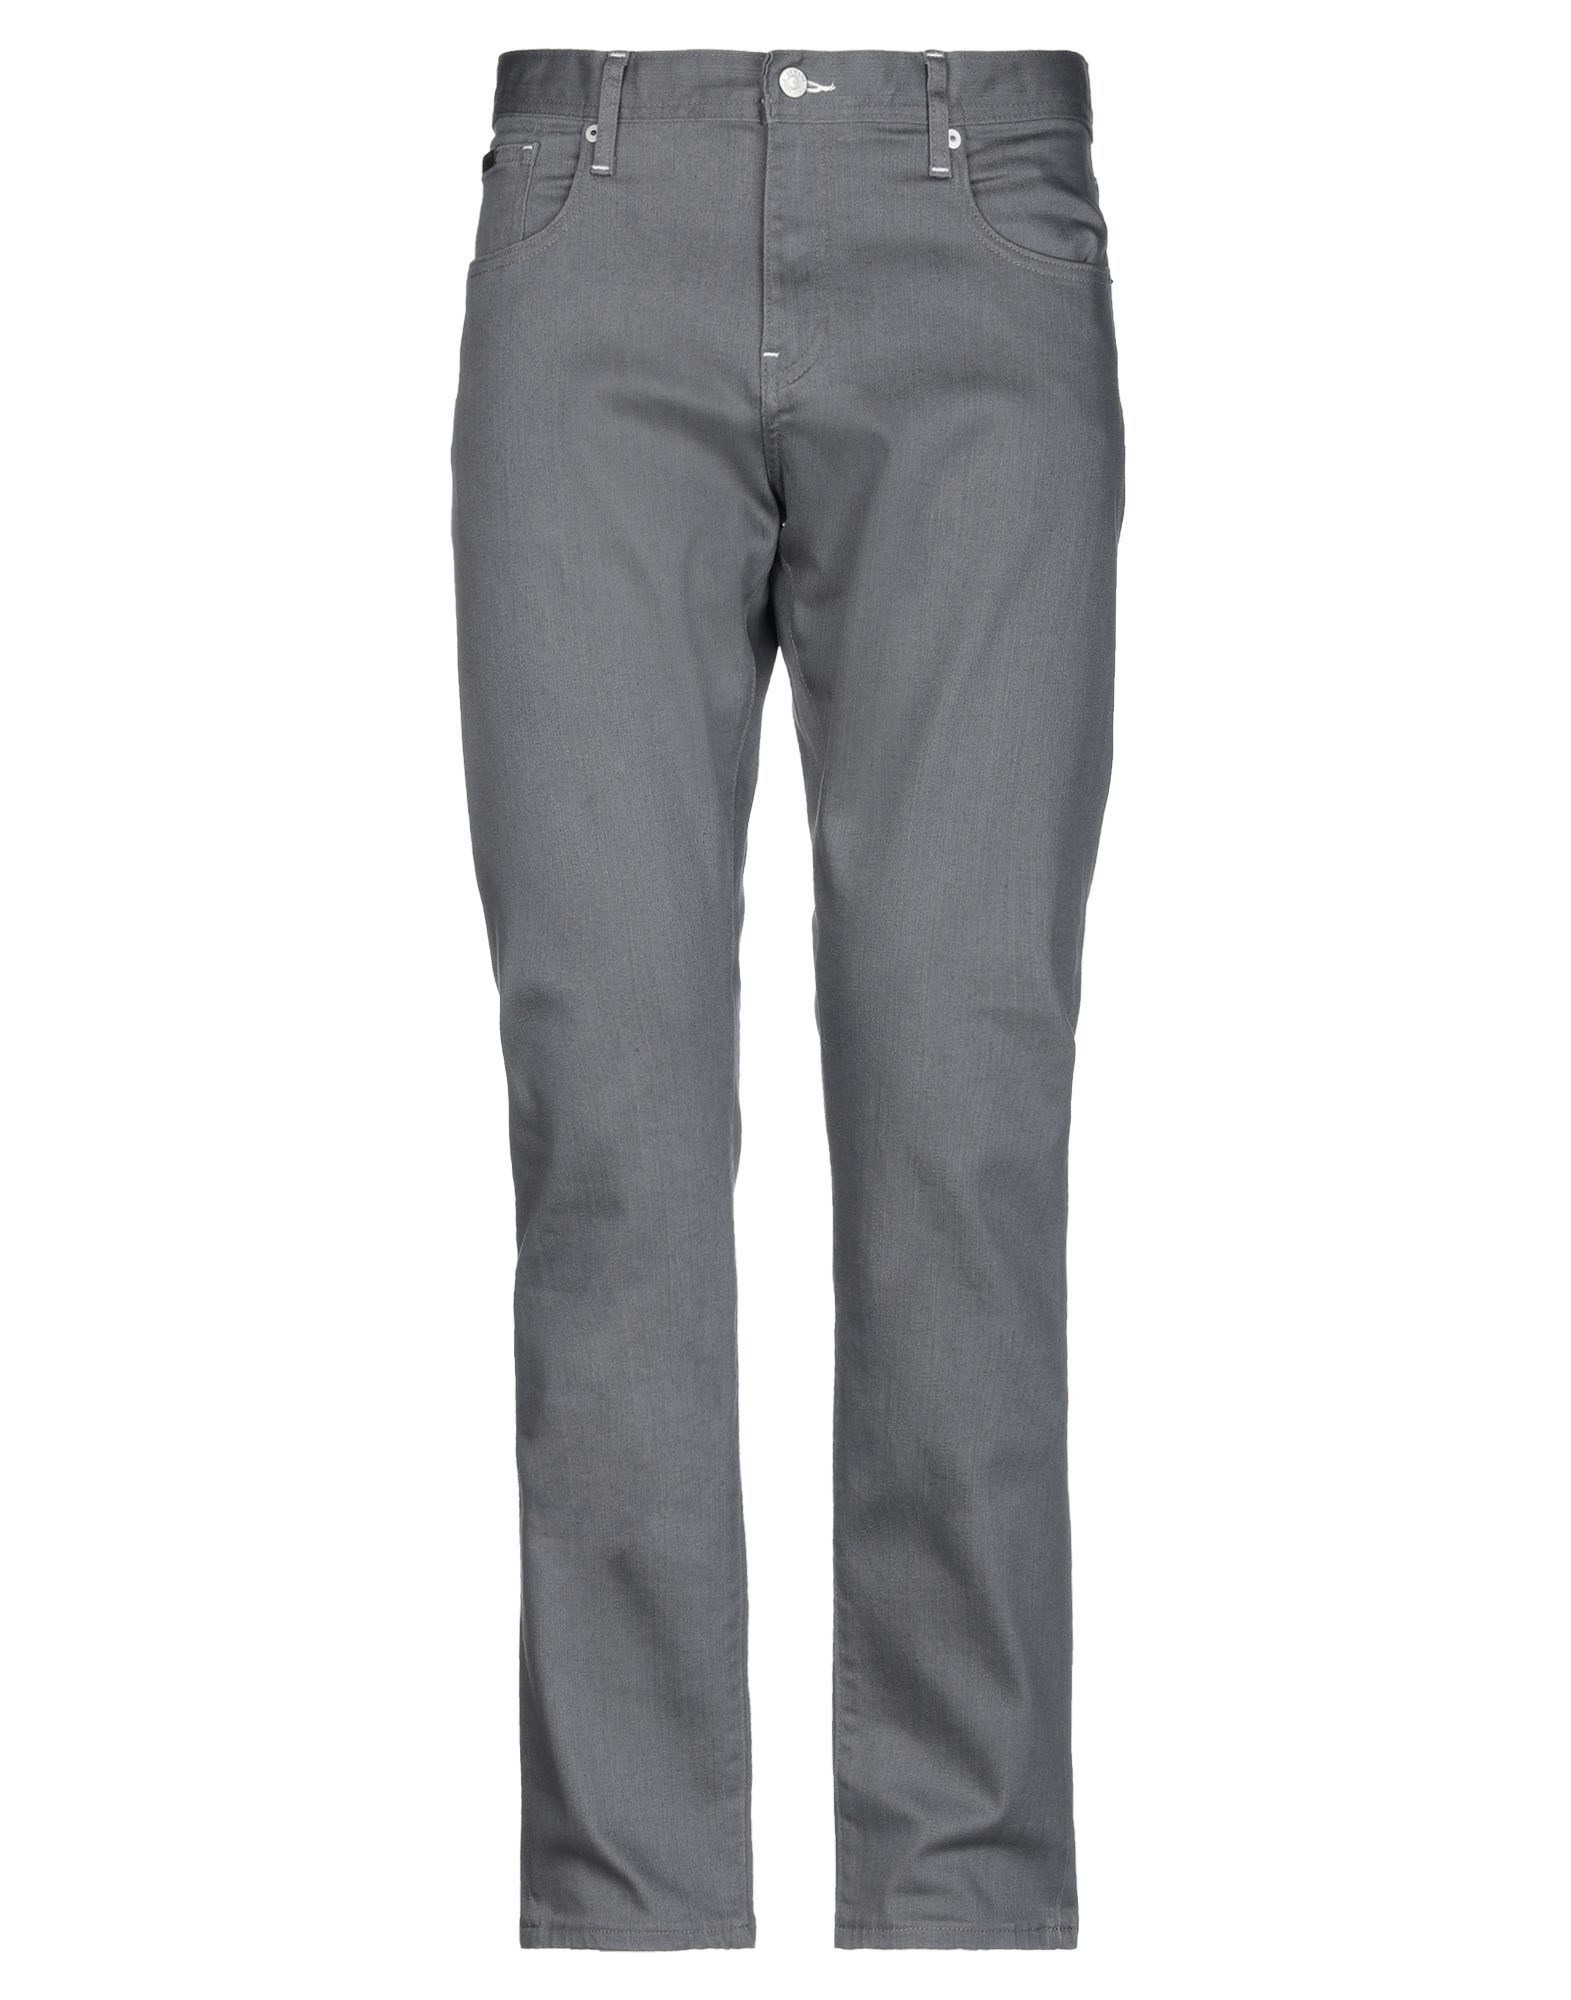 ARMANI EXCHANGE Denim pants - Item 42788598